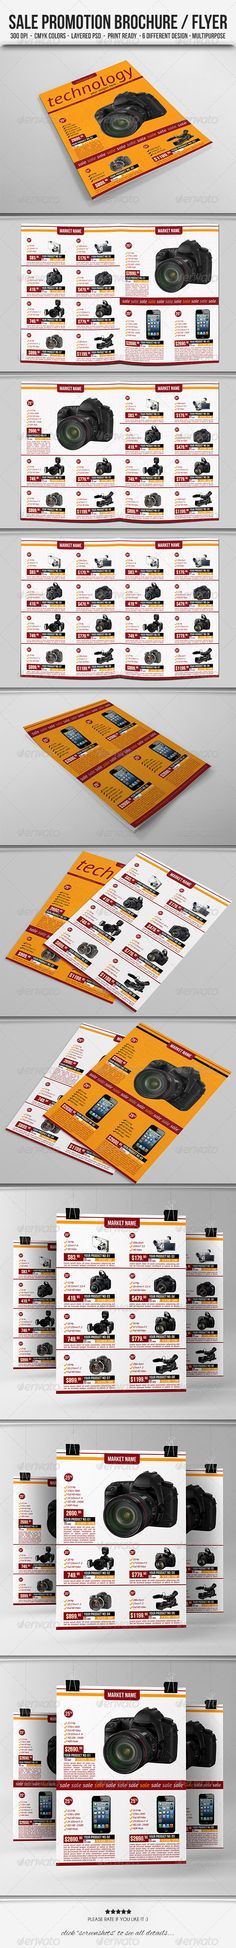 Sale Promotion Brochure/Flyer  #GraphicRiver        Features  6 PSD files;    cover, back-cover, page-1, page-2, page-3, page-4    1 Info.txt    Images are not included  Multi-purpose design  6 different design  Very easy to customize    Editable text/colors/images    Well organized layer  Work organized in folders  Resizable to any dimension  Dimensions  21×29.7 cm  300 DPI 0.5 cm bleed   CMYK Colors    Free Fonts Bebas Neue  PT Serif  PT Sans  Pattern Author:  .thevectorart  Used under…